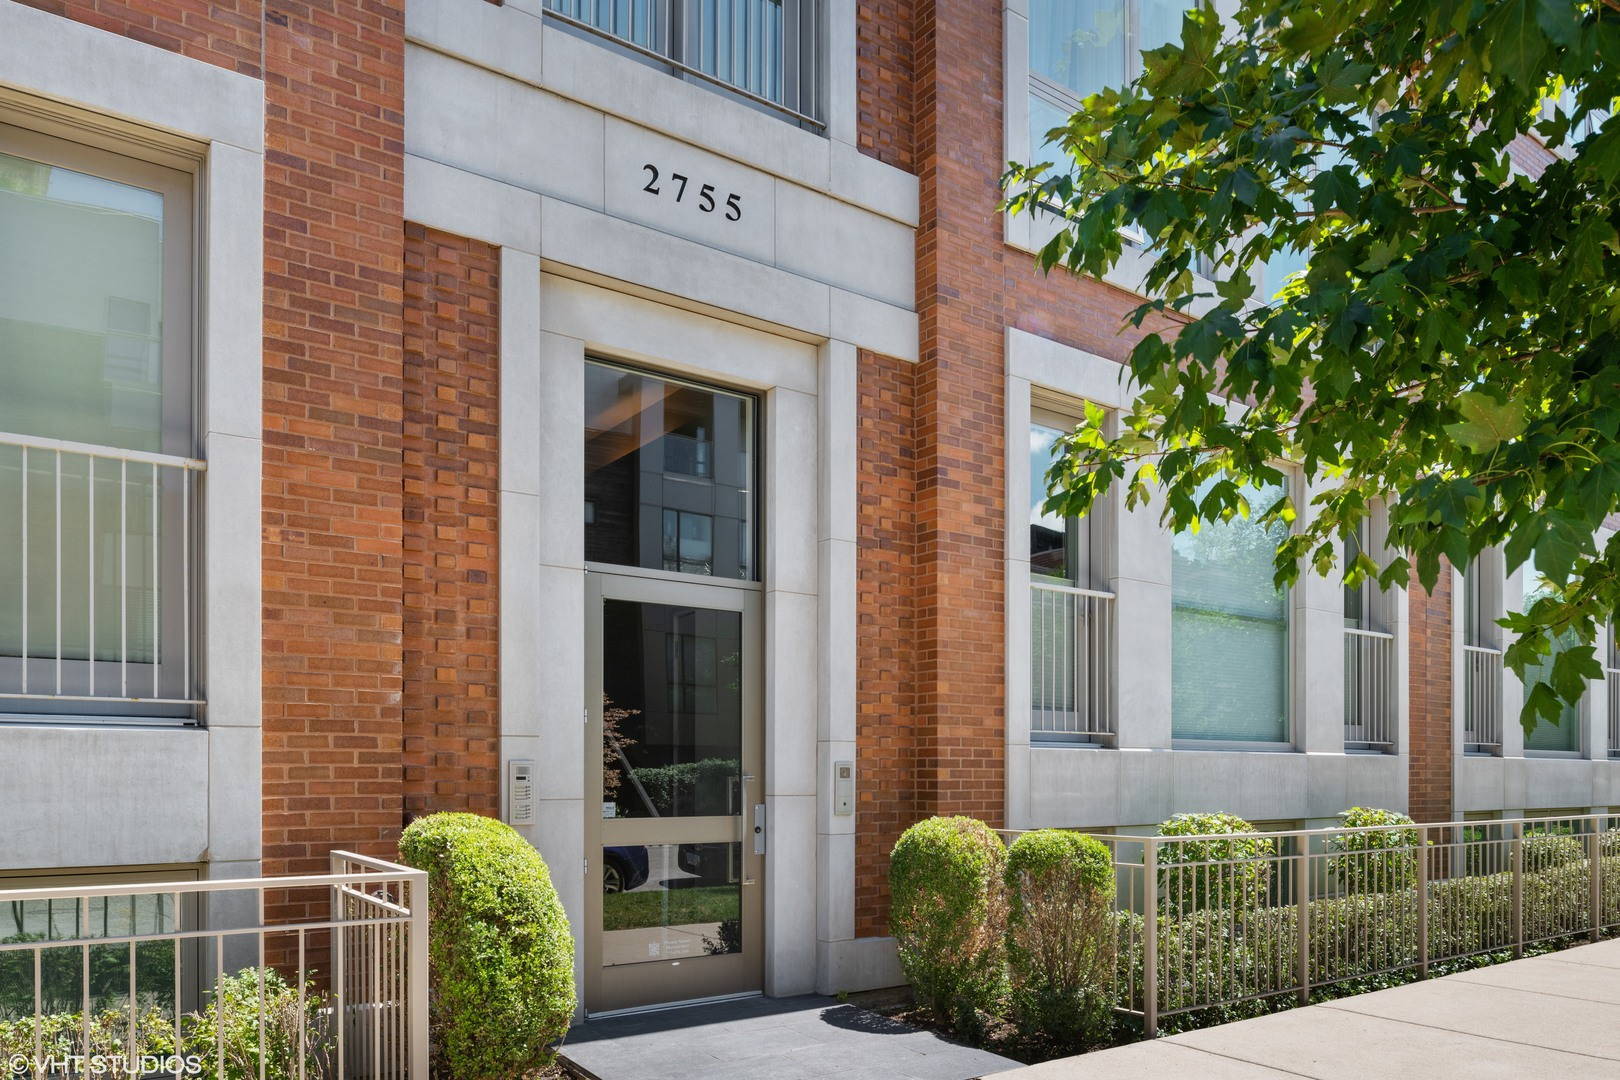 Your Lincoln Park dream condo! This perfectly situated extra WIDE 2 bed 2 bath condo on tree-lined L